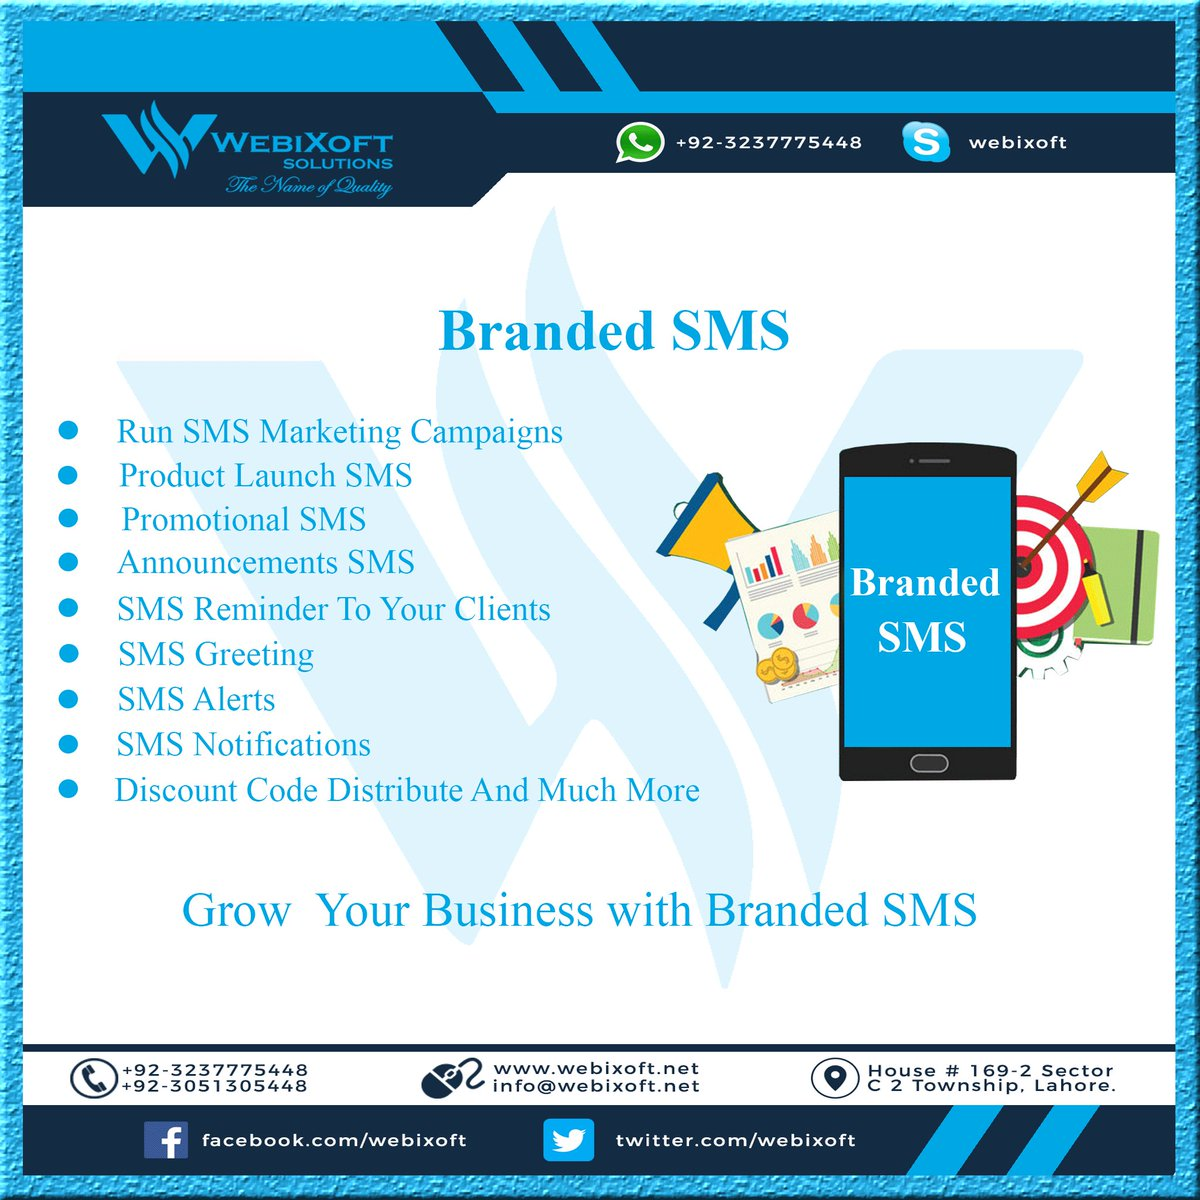 Branded SMS will be sent with your business name. It is the most effective way of marketing and reaches your prospective clients. #sms #smsmarketing #brandedsms #transactionalsms #lahore #Pakistan #smsalert #promotionalsms #bulksms #webixoft #smsapi #webixoftsolutions<br>http://pic.twitter.com/Iqljm38xpk